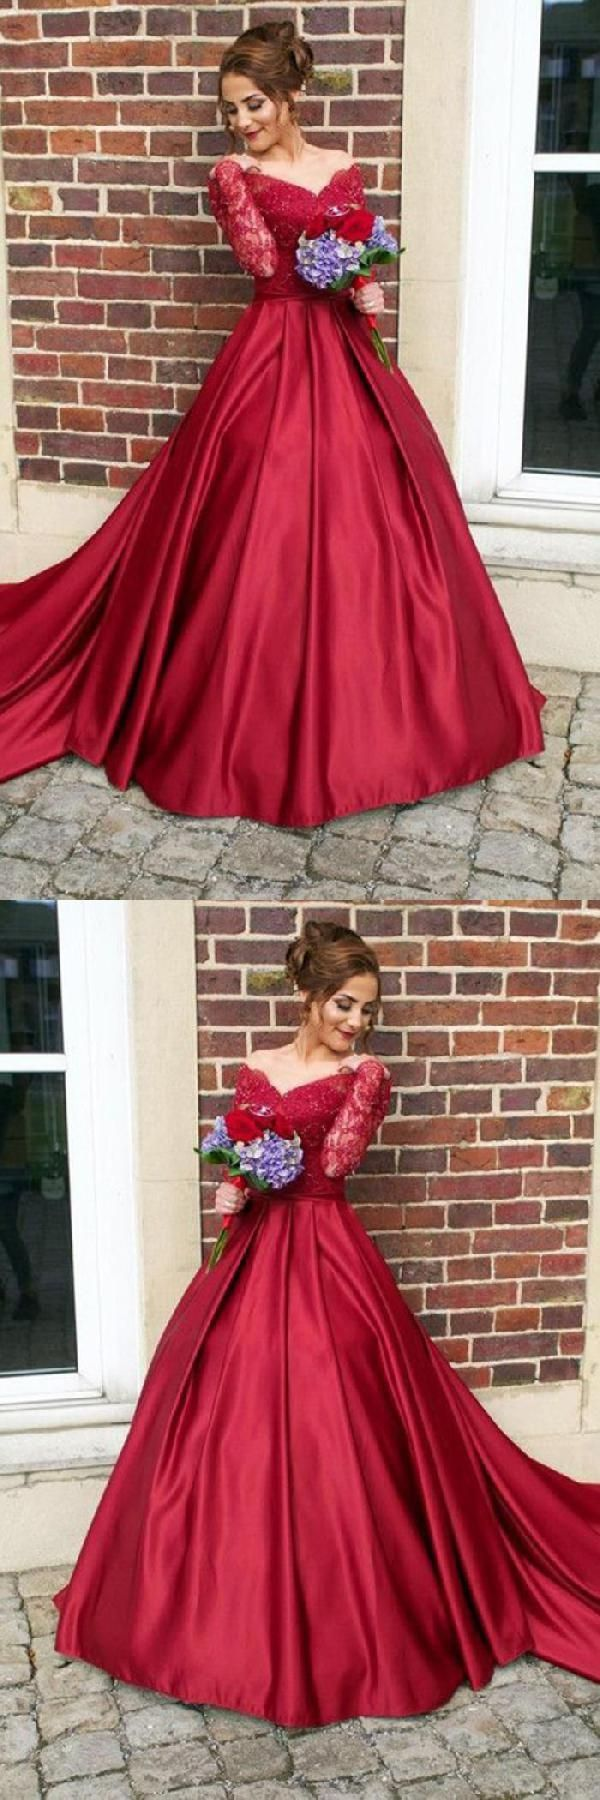 Admirable long prom dresses prom dresses with sleeves burgundy